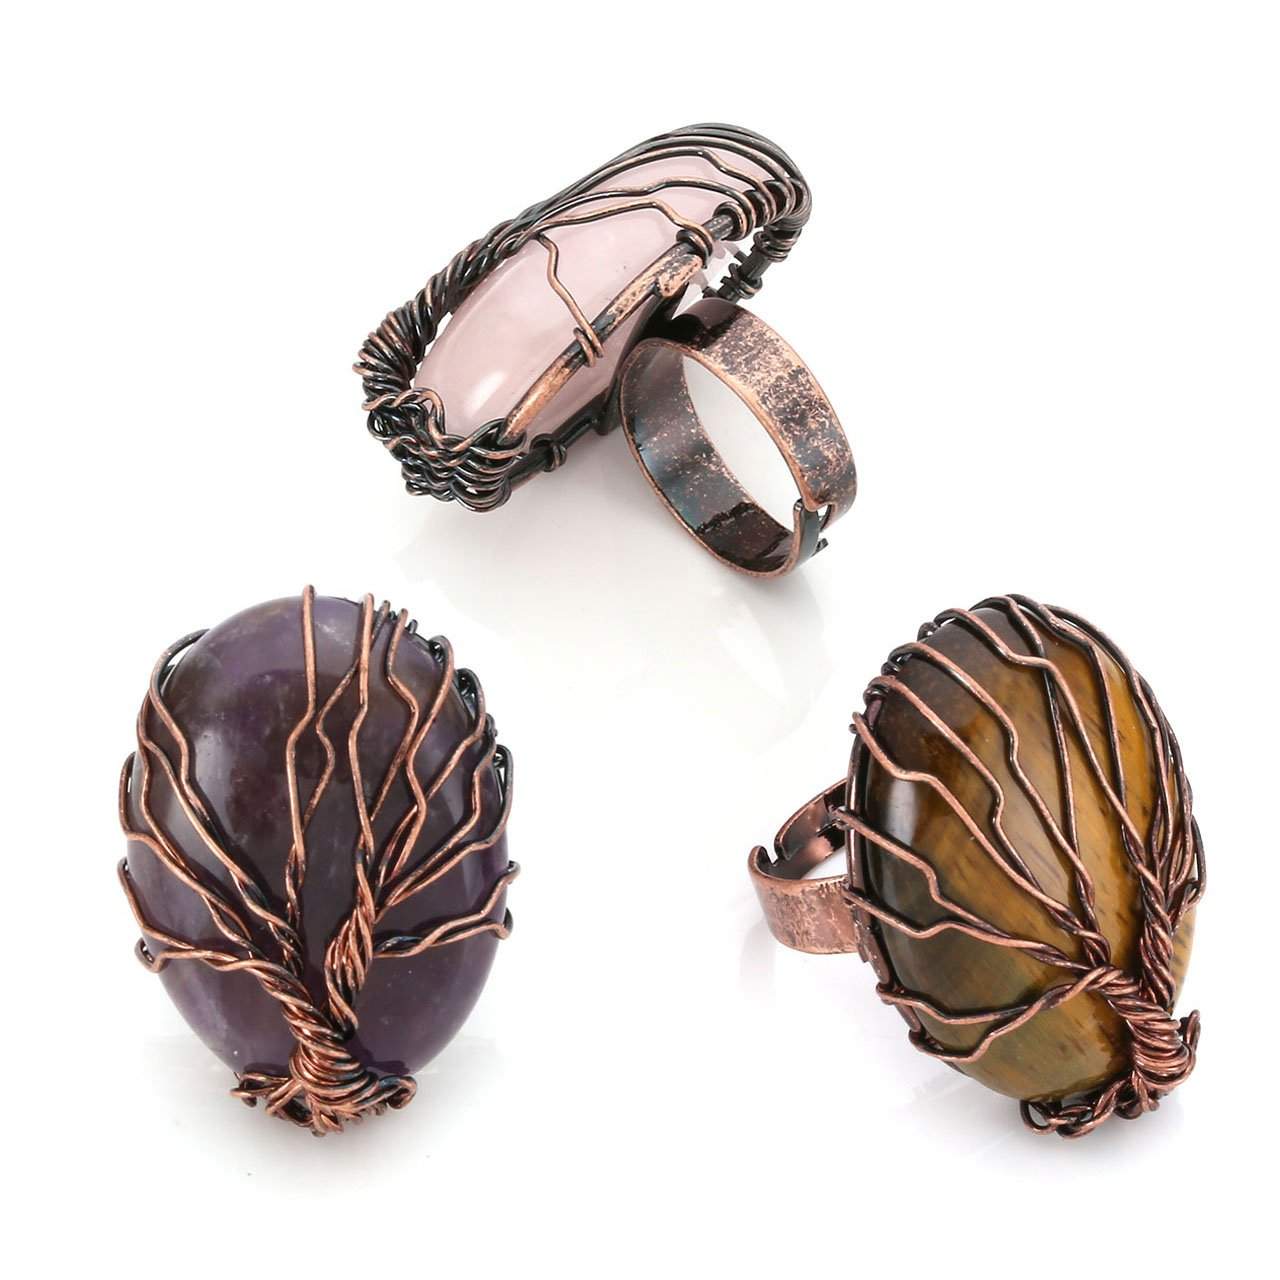 Top Plaza Handmade Retro Vintage Copper Wire Wrapped Tree of Life Oval Gemstone Healing Crystal Adjustable Ring Bronze Band Size 6 7 8(Amethyst+Rose Quartz+Tiger Eye)